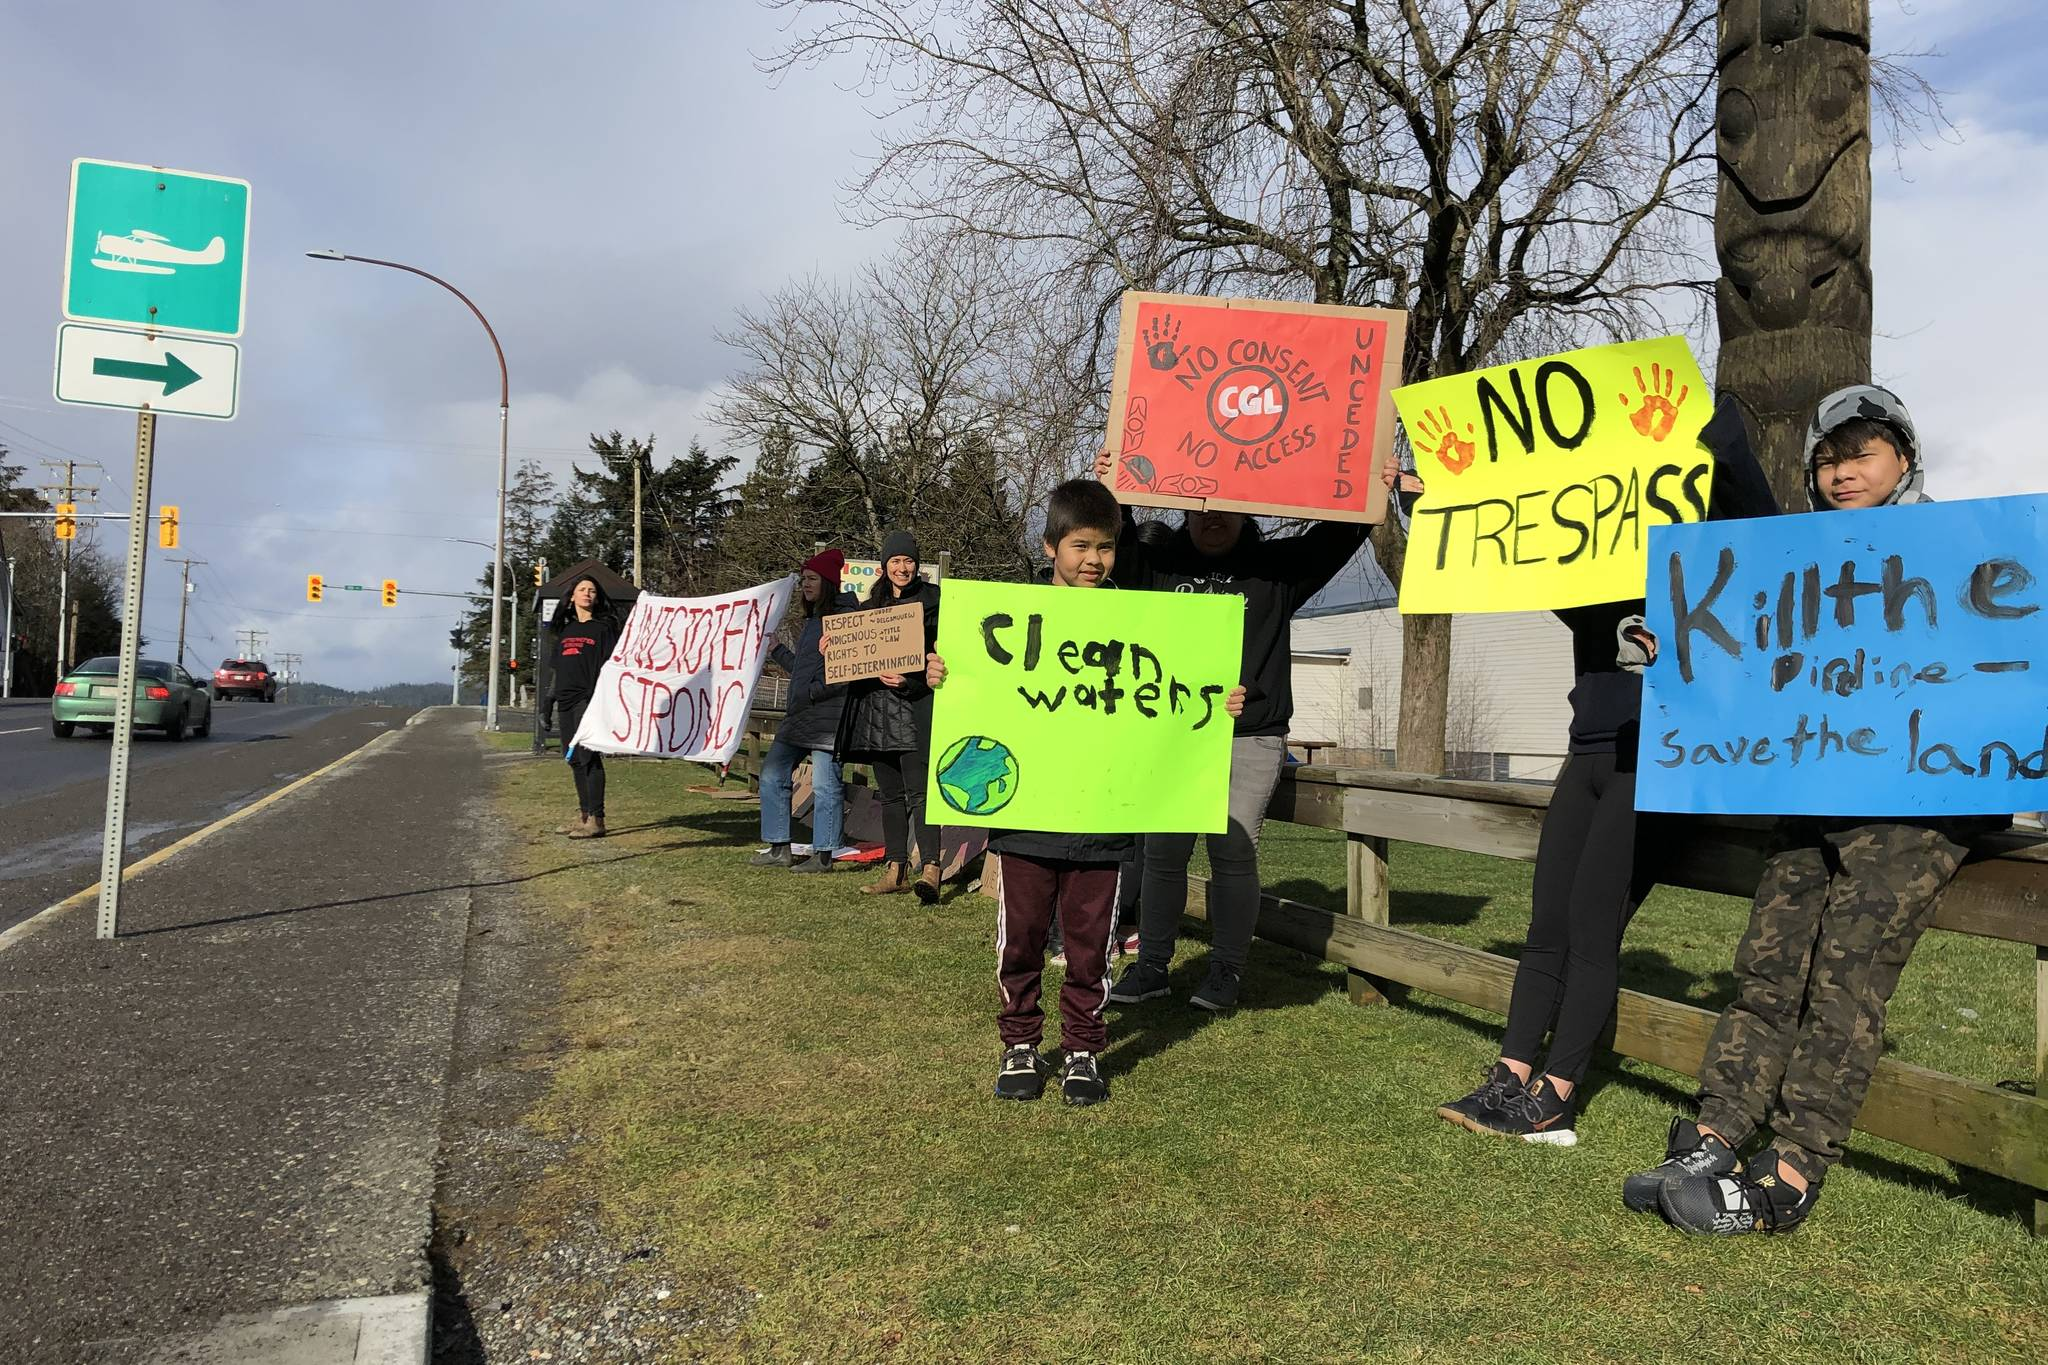 Protesters gathered on McBride Street across from the Prince Rupert RCMP station on Saturday in support of the Unist'ot'en dispute with the Coastal GasLink pipeline. On Monday, RCMP removed a resurrected blockade of CN rail lines near New Hazelton and according to unconfirmed reports arrested at least two hereditary chiefs. The blockade that halted transport to Prince Rupert was originally taken down on Feb. 13 but re-appeared on Monday was followed by Gitxsan and their supporters setting up a blockade on Hwy 16.